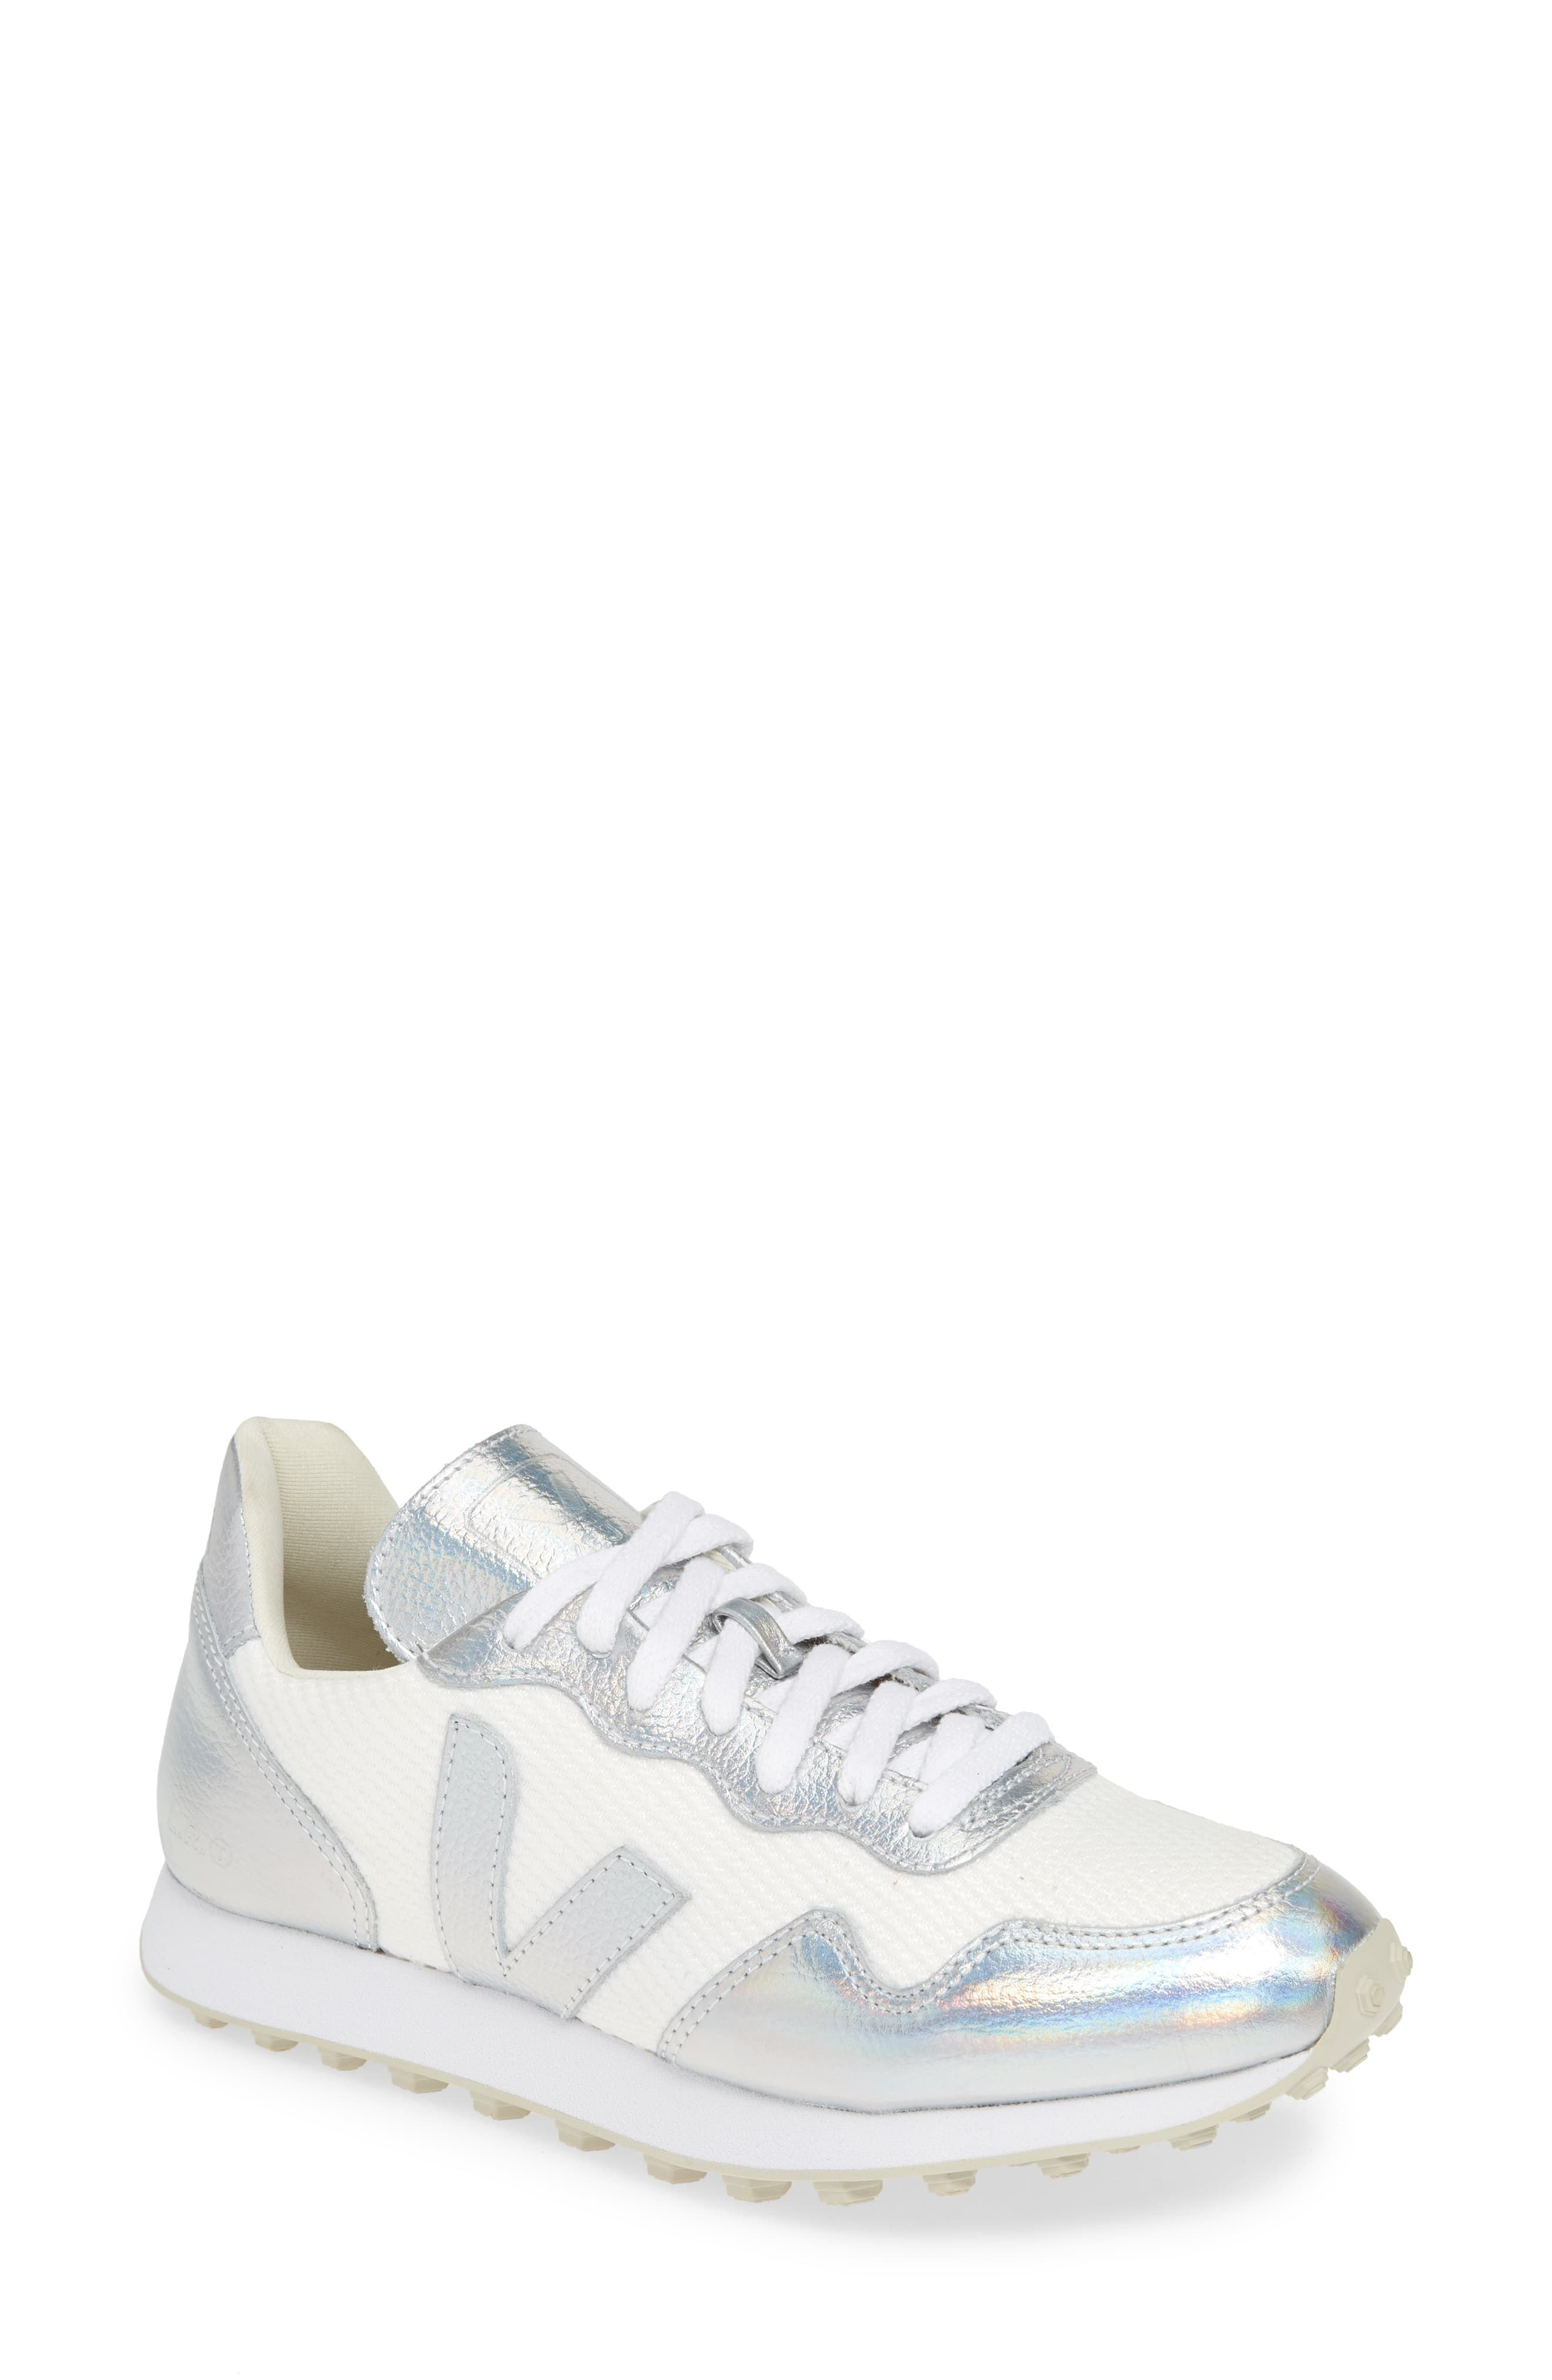 Hexa Sneaker Veja nordstrom.com $120.00 SHOP NOW Meghan Markle may have put Veja on the map, but a commitment to comfort and sustainability will keep them there.